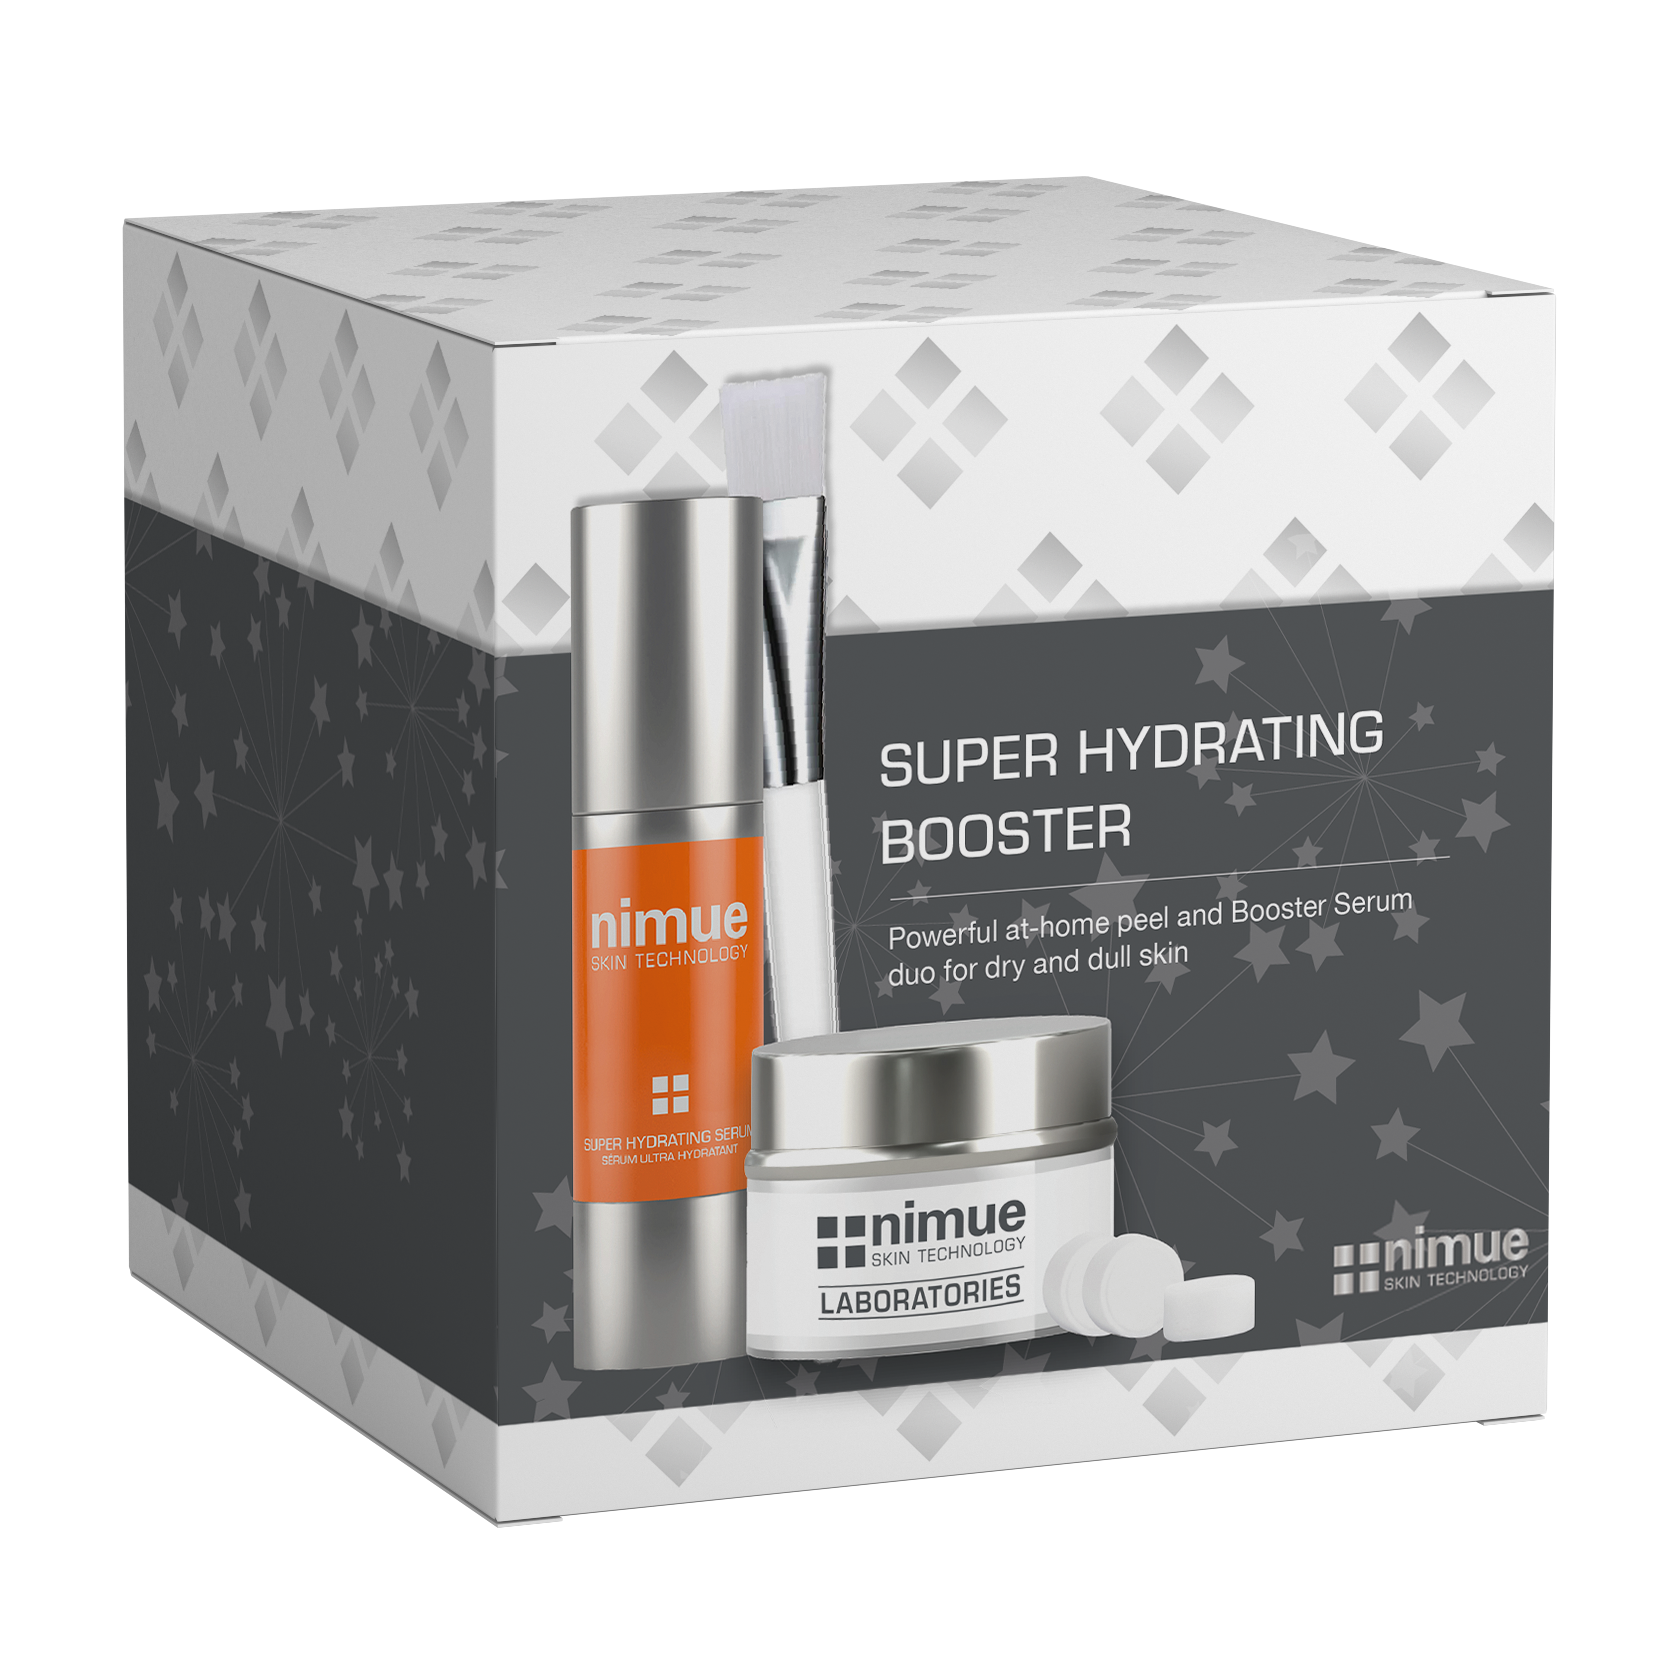 Nimue Super Hydrating Booster